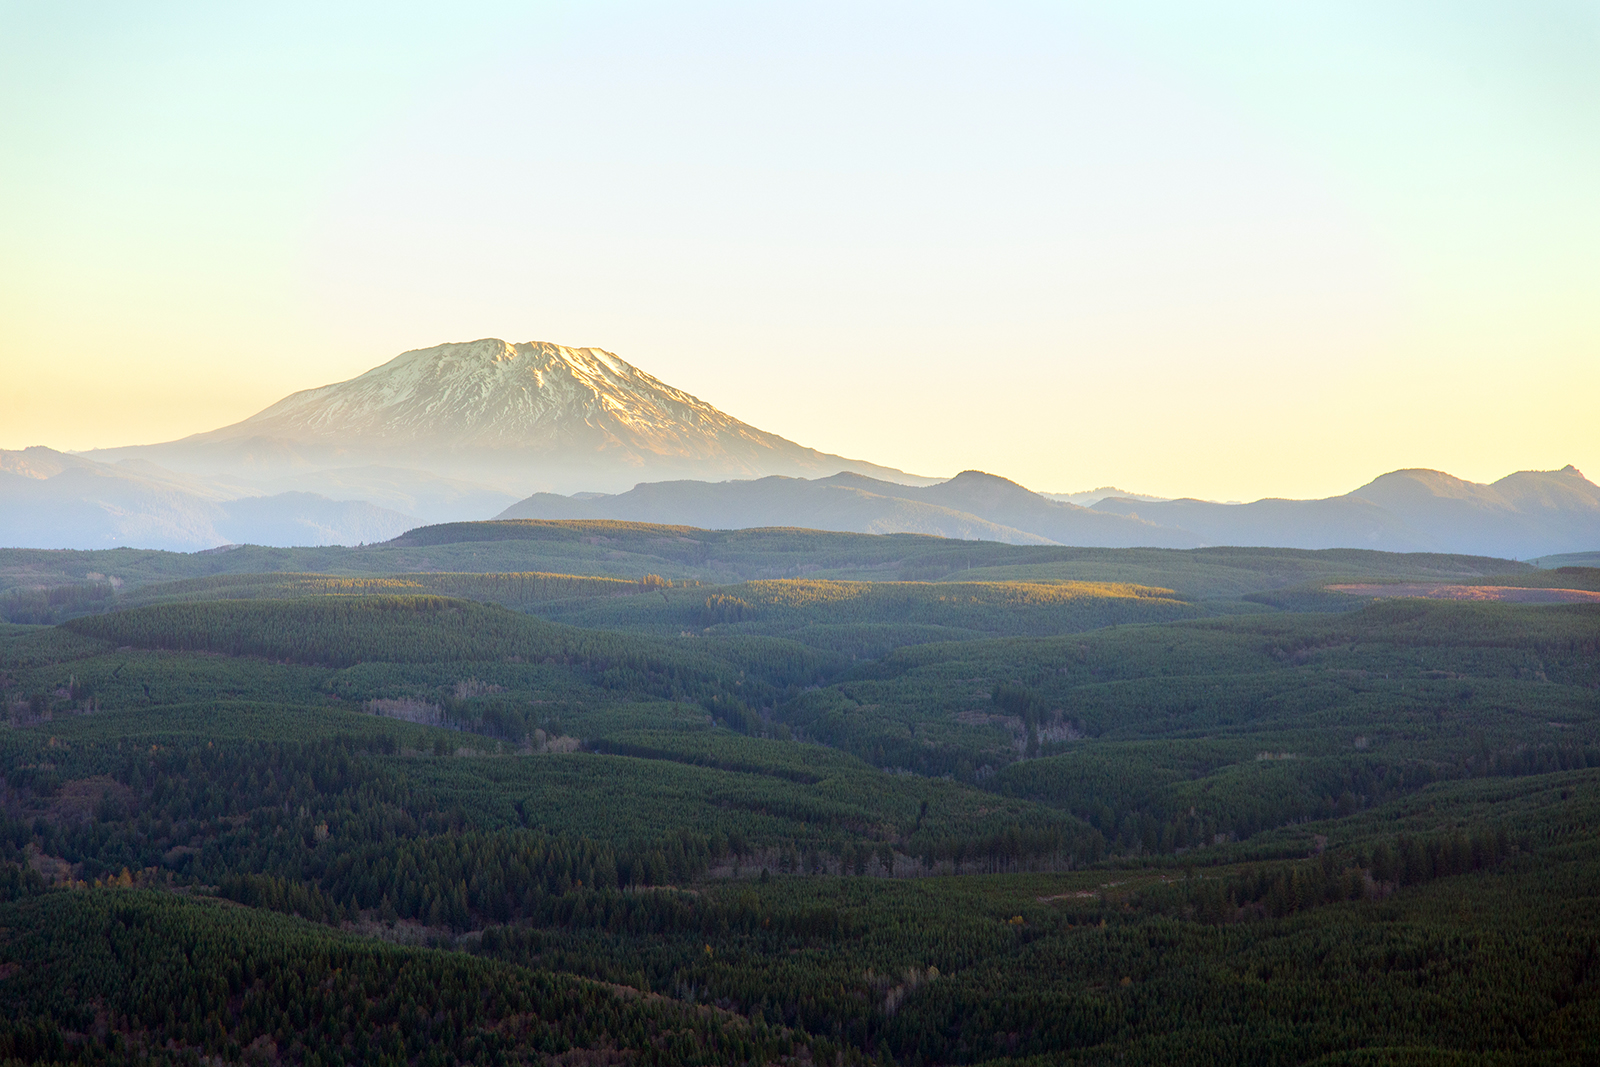 Mount Saint Helens, background, rises behind Bells Mountain forest in southern Washington. Photo by Abby Wilcox